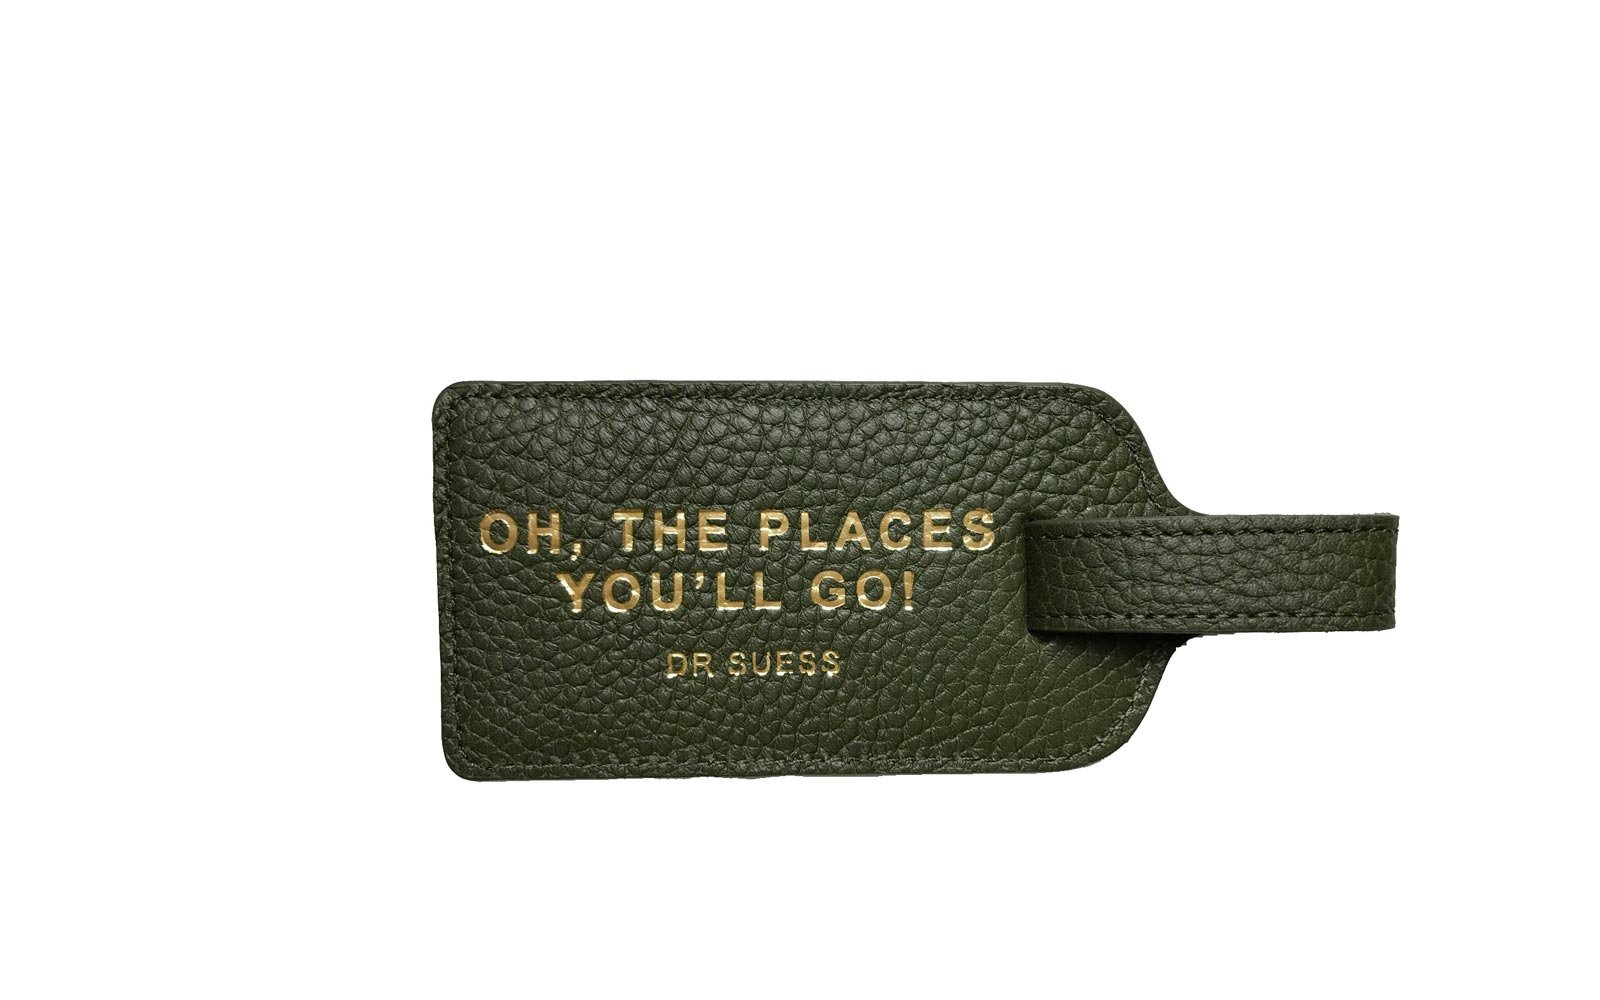 Kempton & Co Luggage Tag